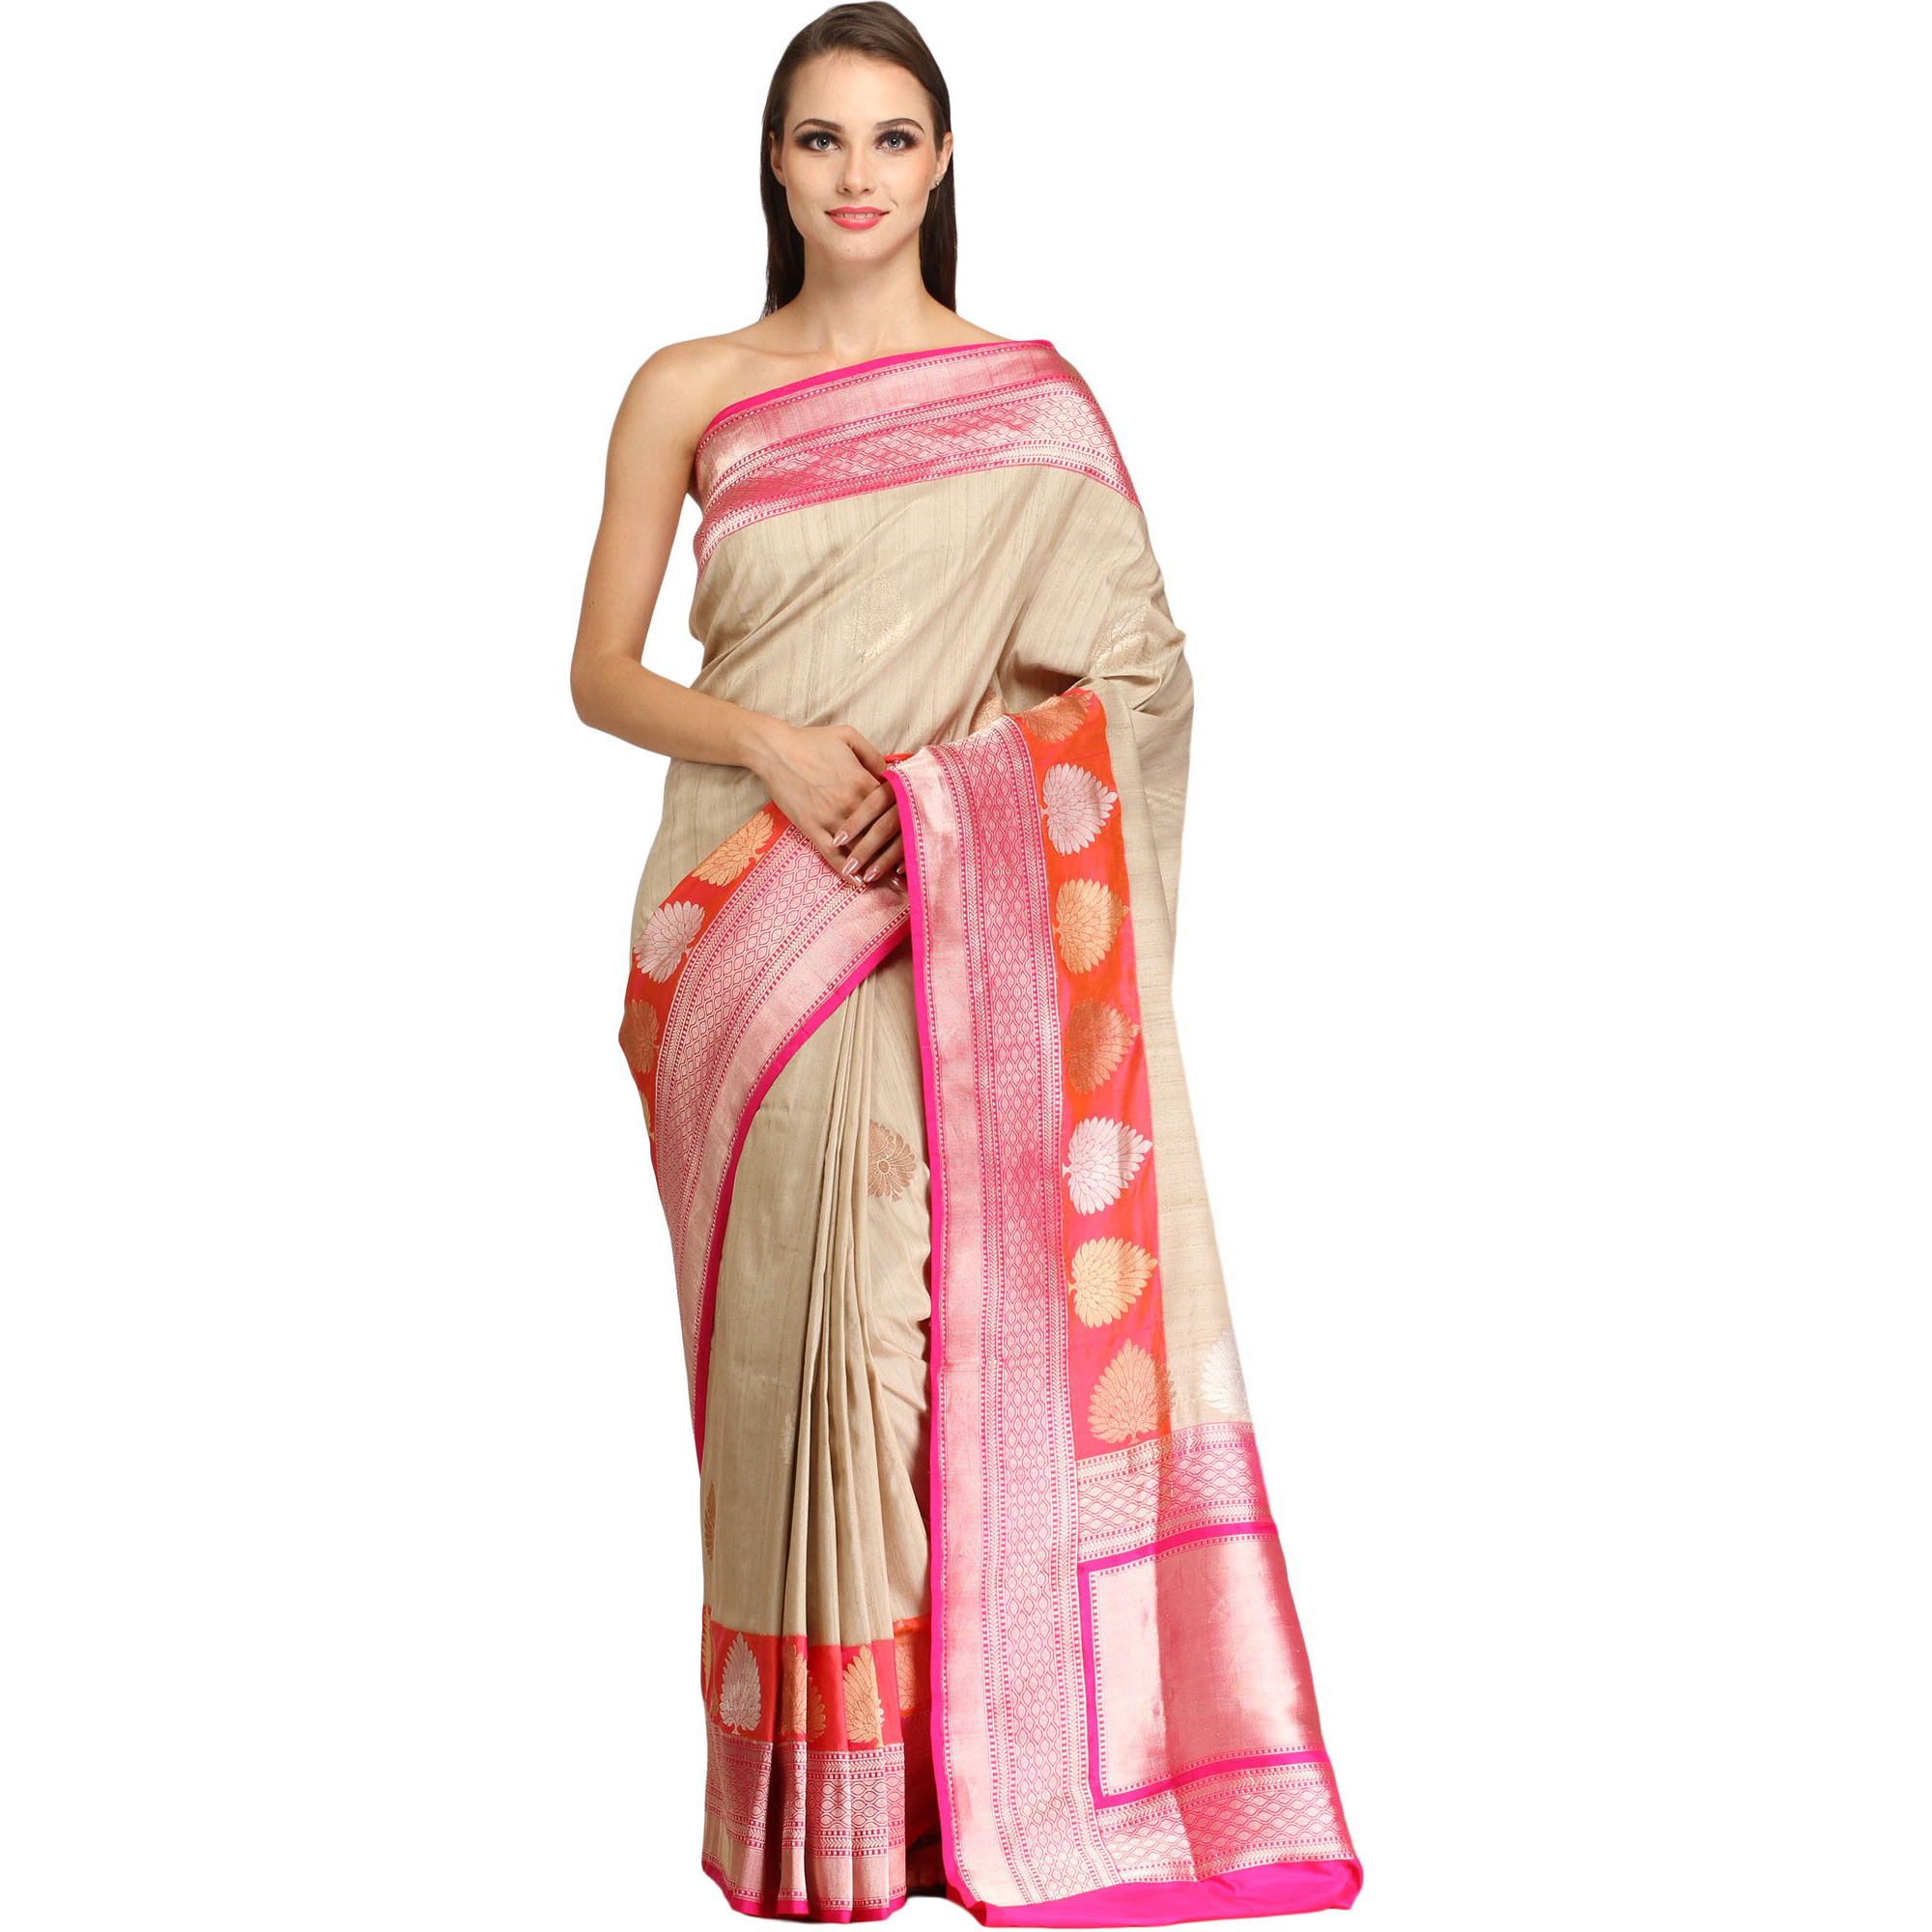 Sandshell and Pink Sari from Banaras with Zari-Woven Trees on Border and Brocaded Pallu